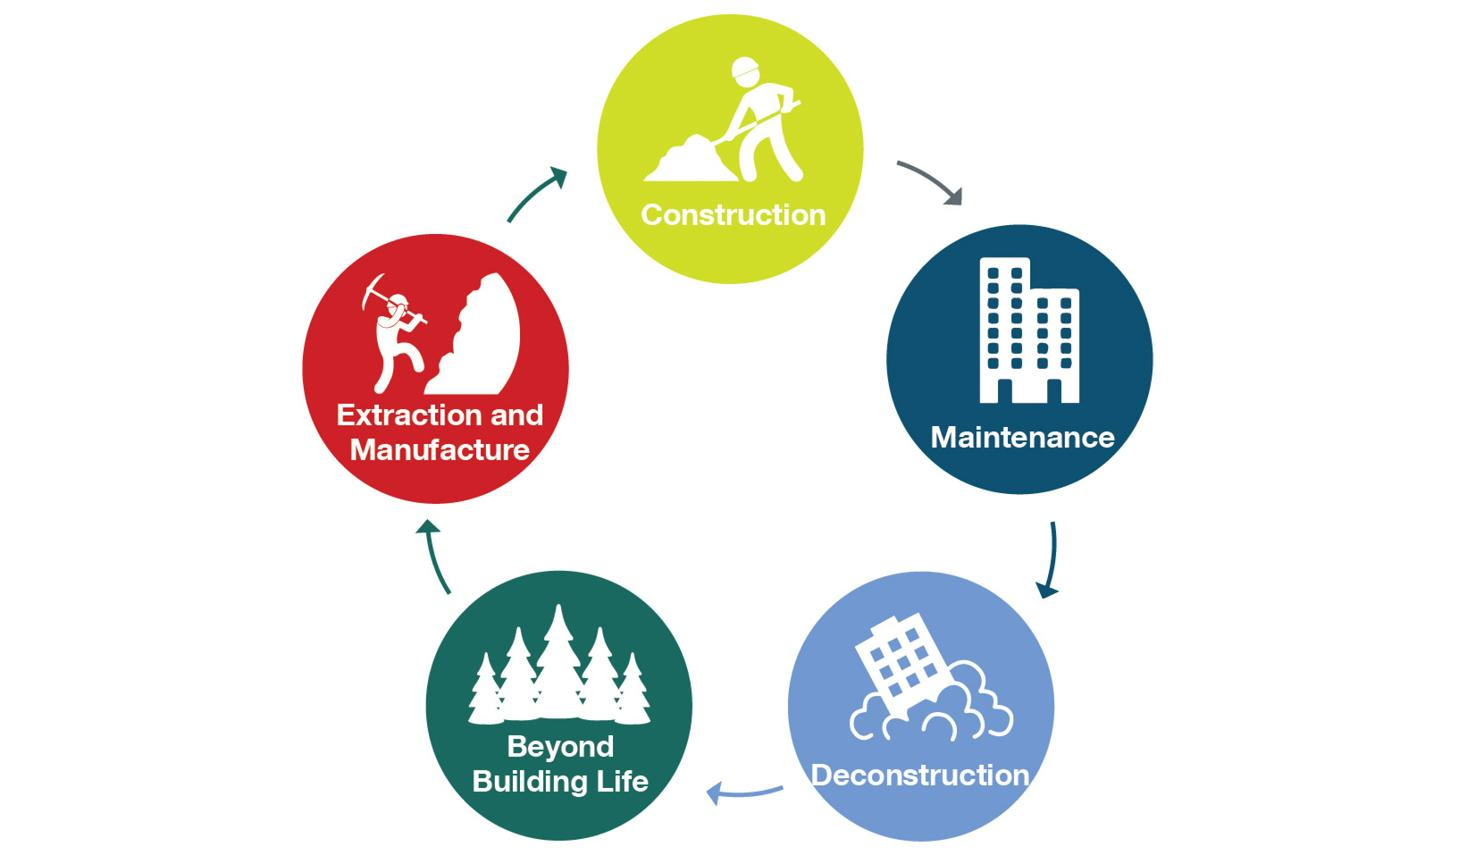 life cycle of building materials consists of construction, maintenance, deconstruction, beyond building life, extraction and manufacture